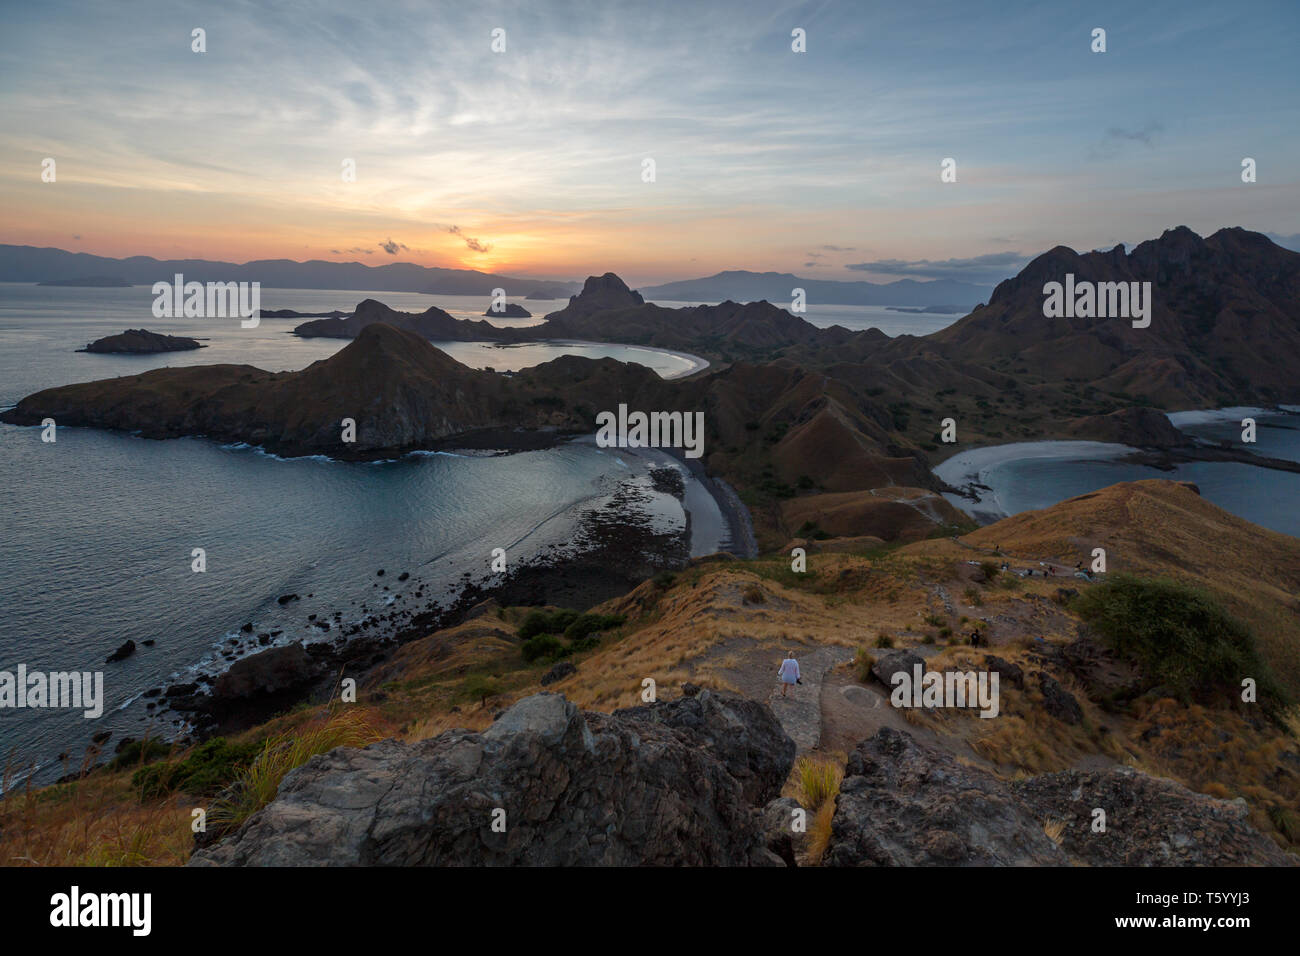 Sunset from hilltop on mountains in Komodo national park silhouettes multiple rock outcrops off shore as sun disappears from view - Stock Image